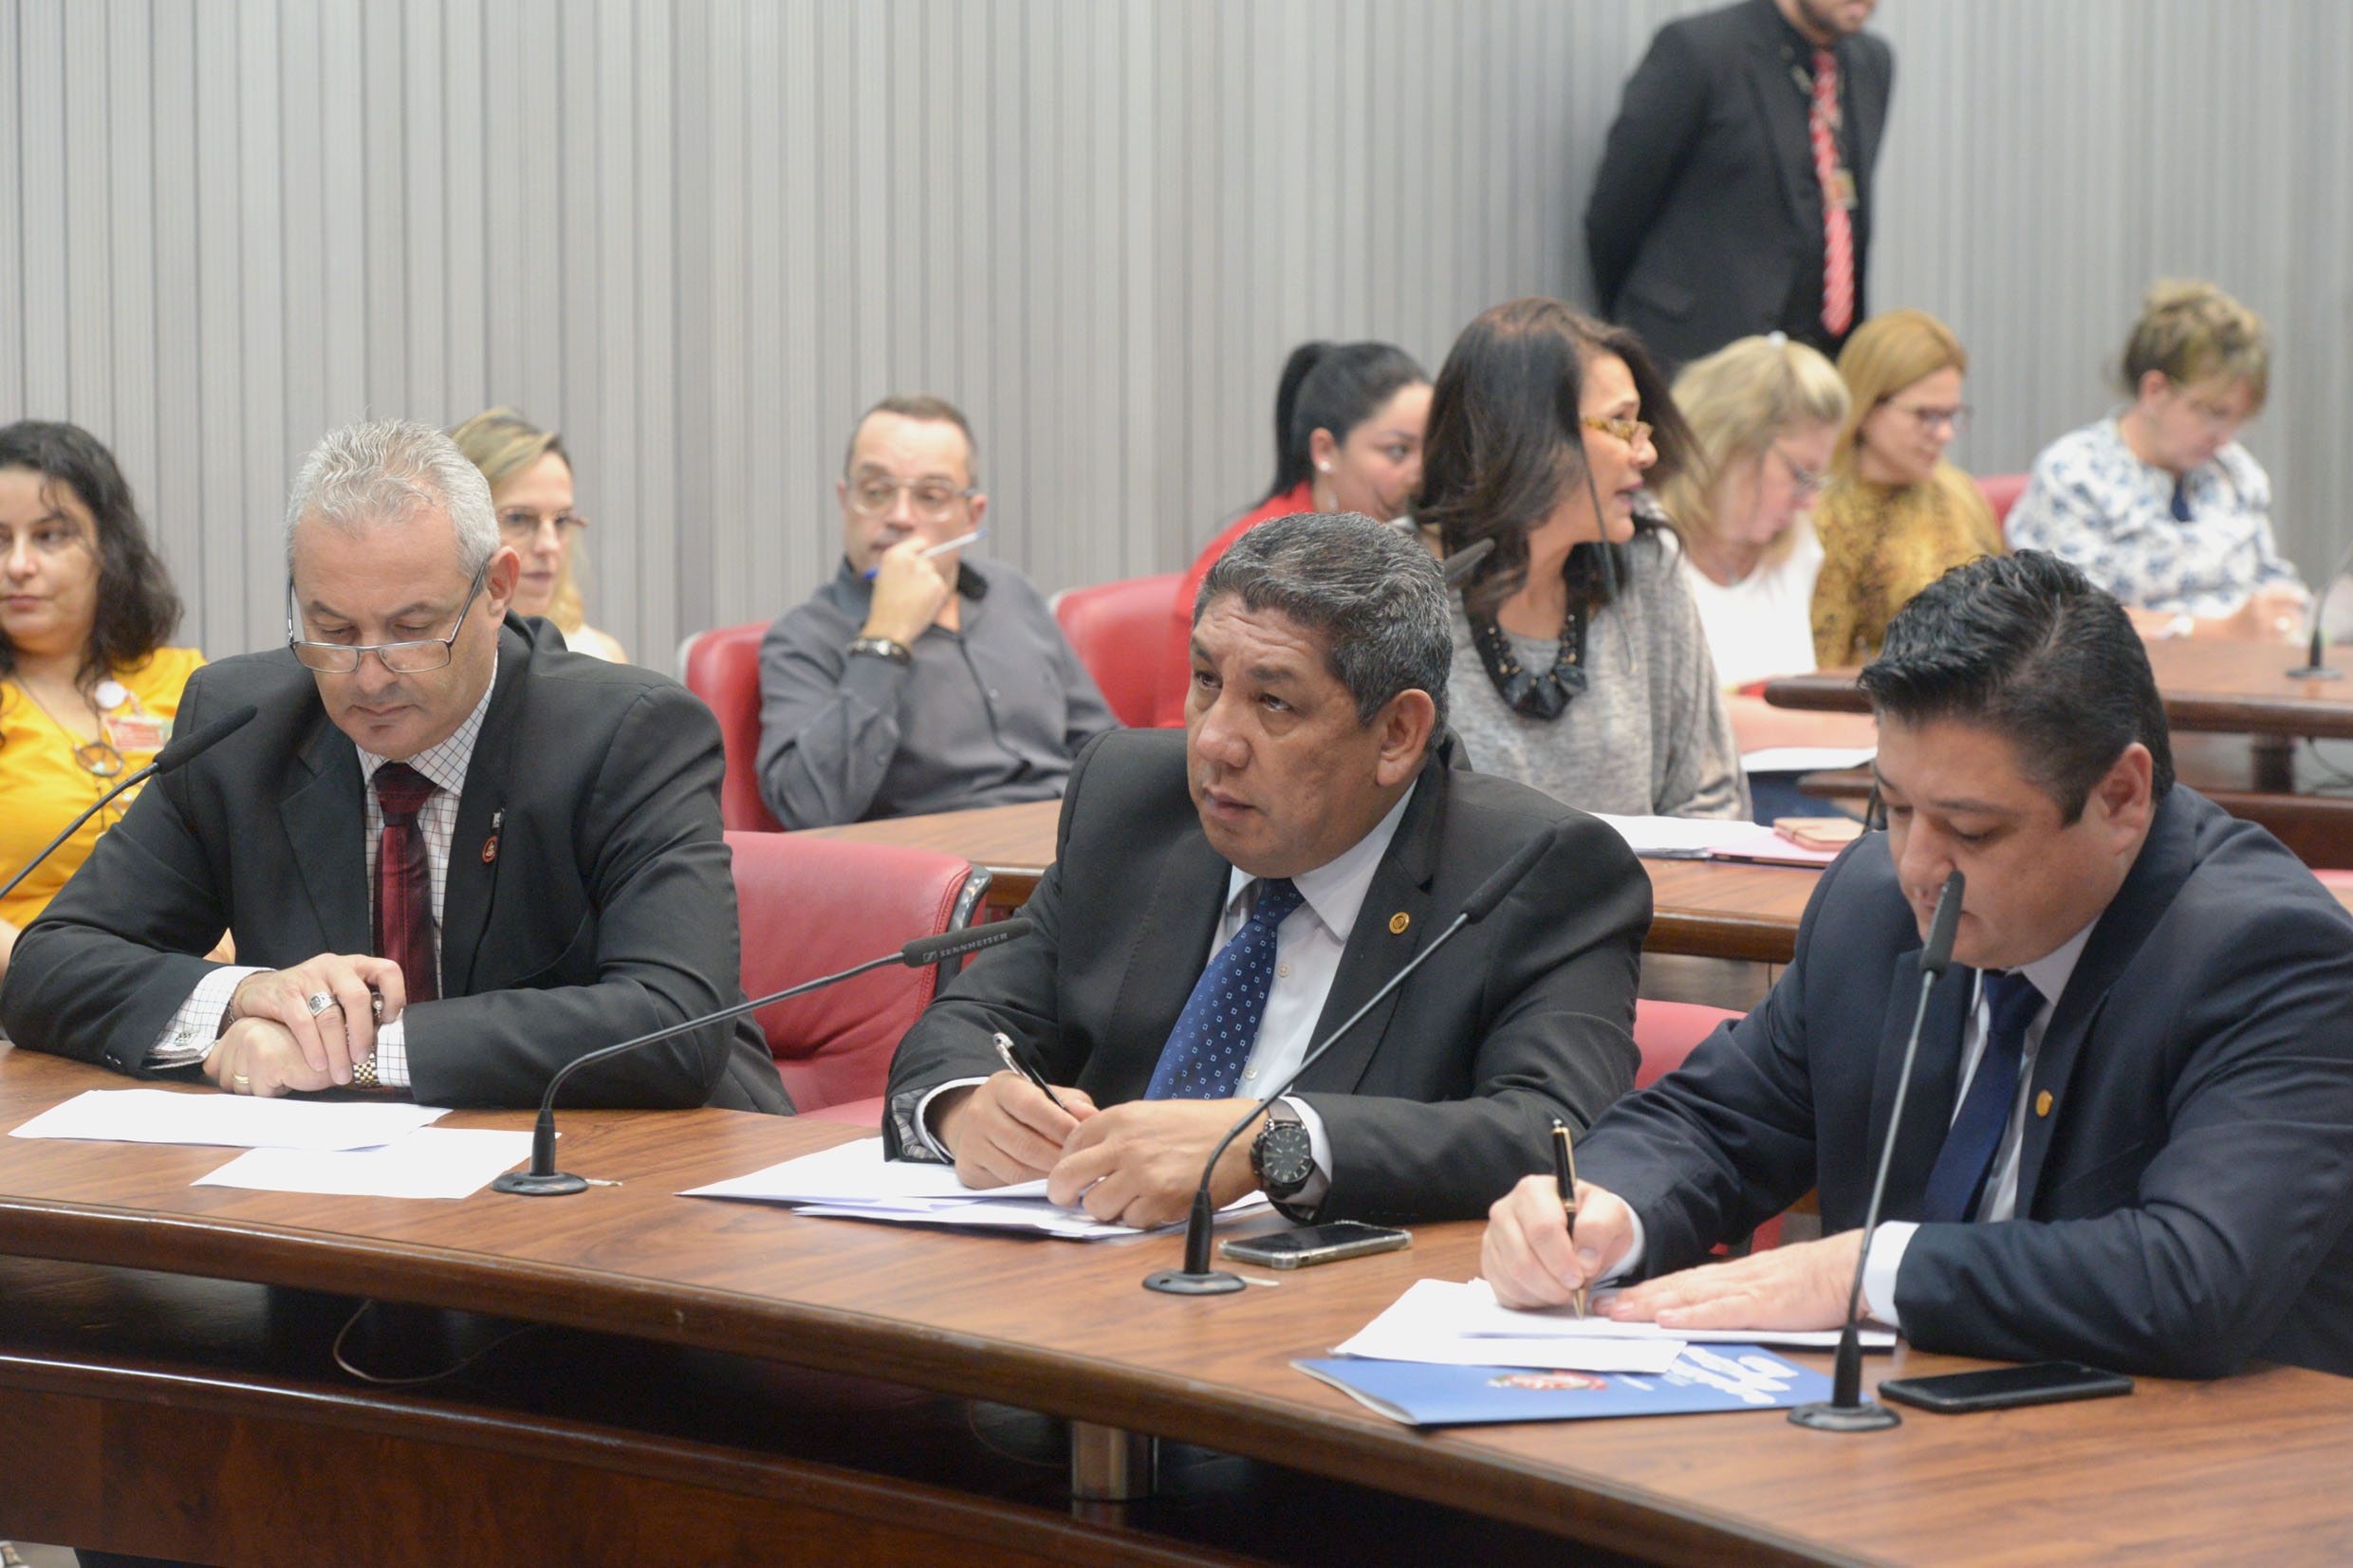 Parlamentares na comissão<a style='float:right' href='https://www3.al.sp.gov.br/repositorio/noticia/N-05-2019/fg234180.jpg' target=_blank><img src='/_img/material-file-download-white.png' width='14px' alt='Clique para baixar a imagem'></a>